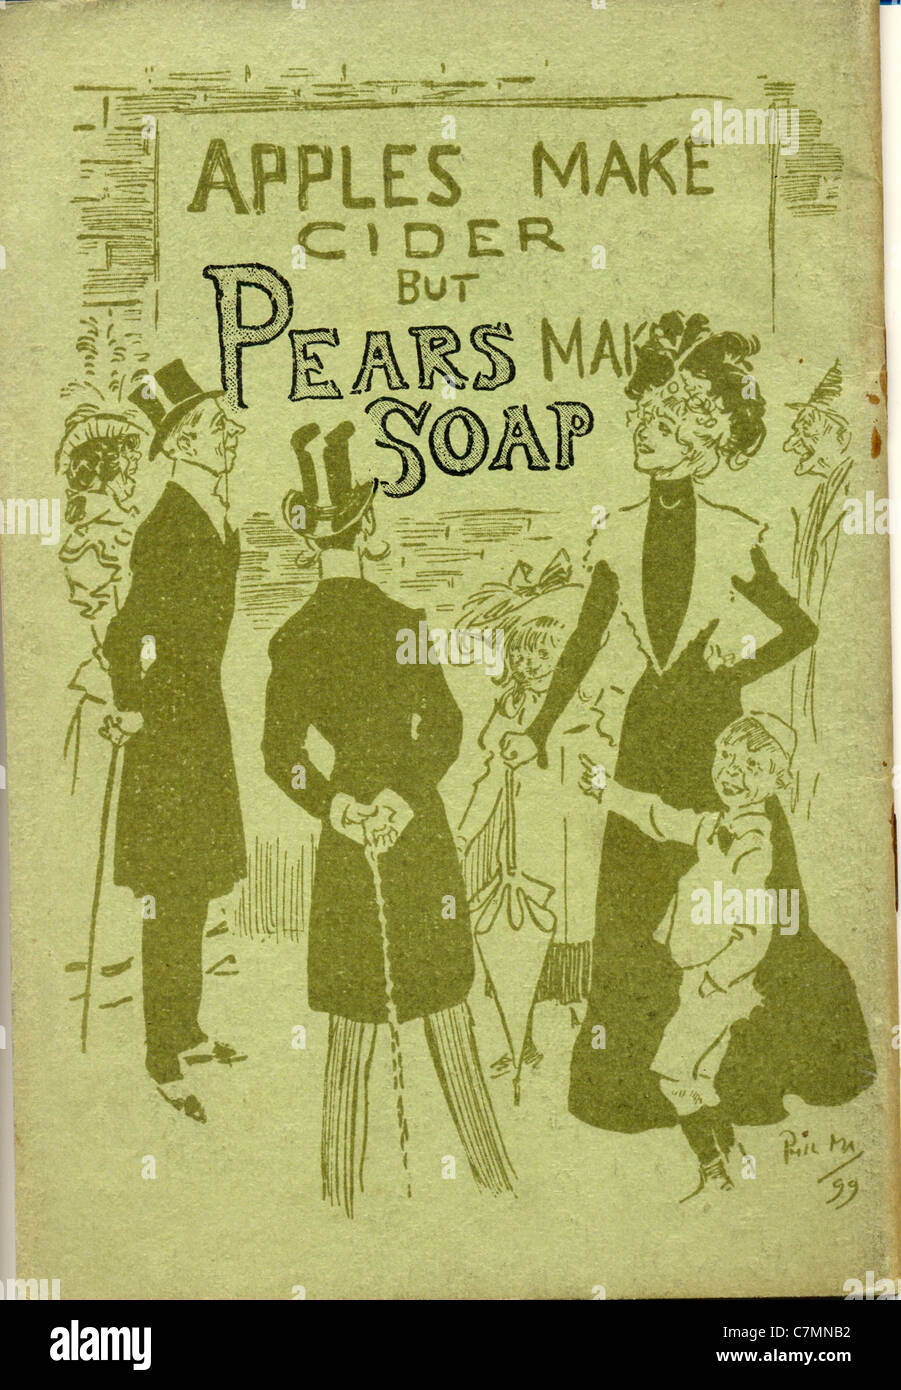 Advertisement for Pears Soap by artist Phil May - Stock Image